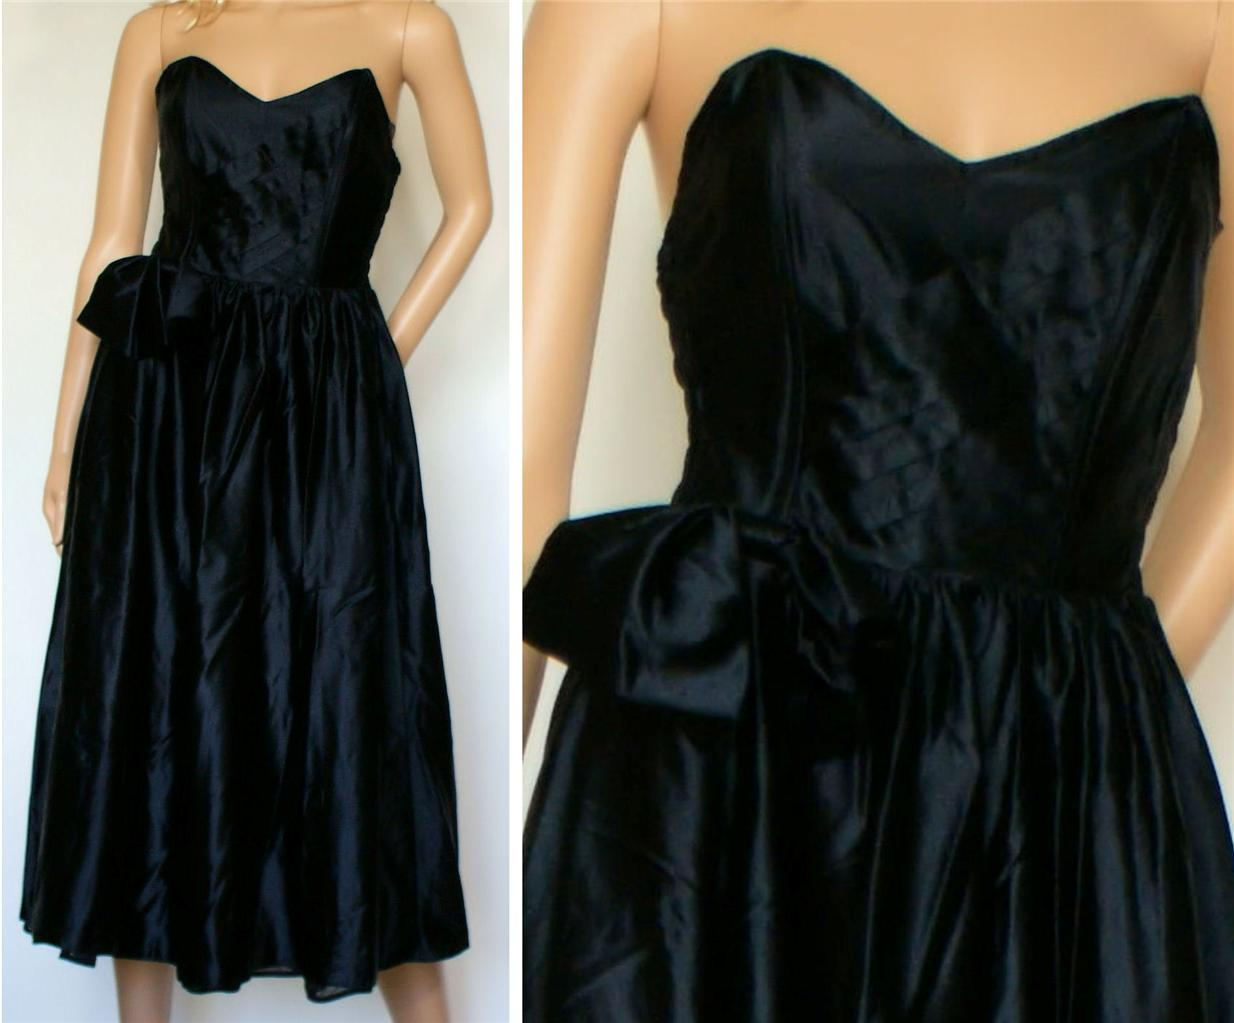 Vintage-Retro-Vtg-Prom-Party-Cocktail-Dress-Strapless-Black-Satin-Calf-UK-6-8